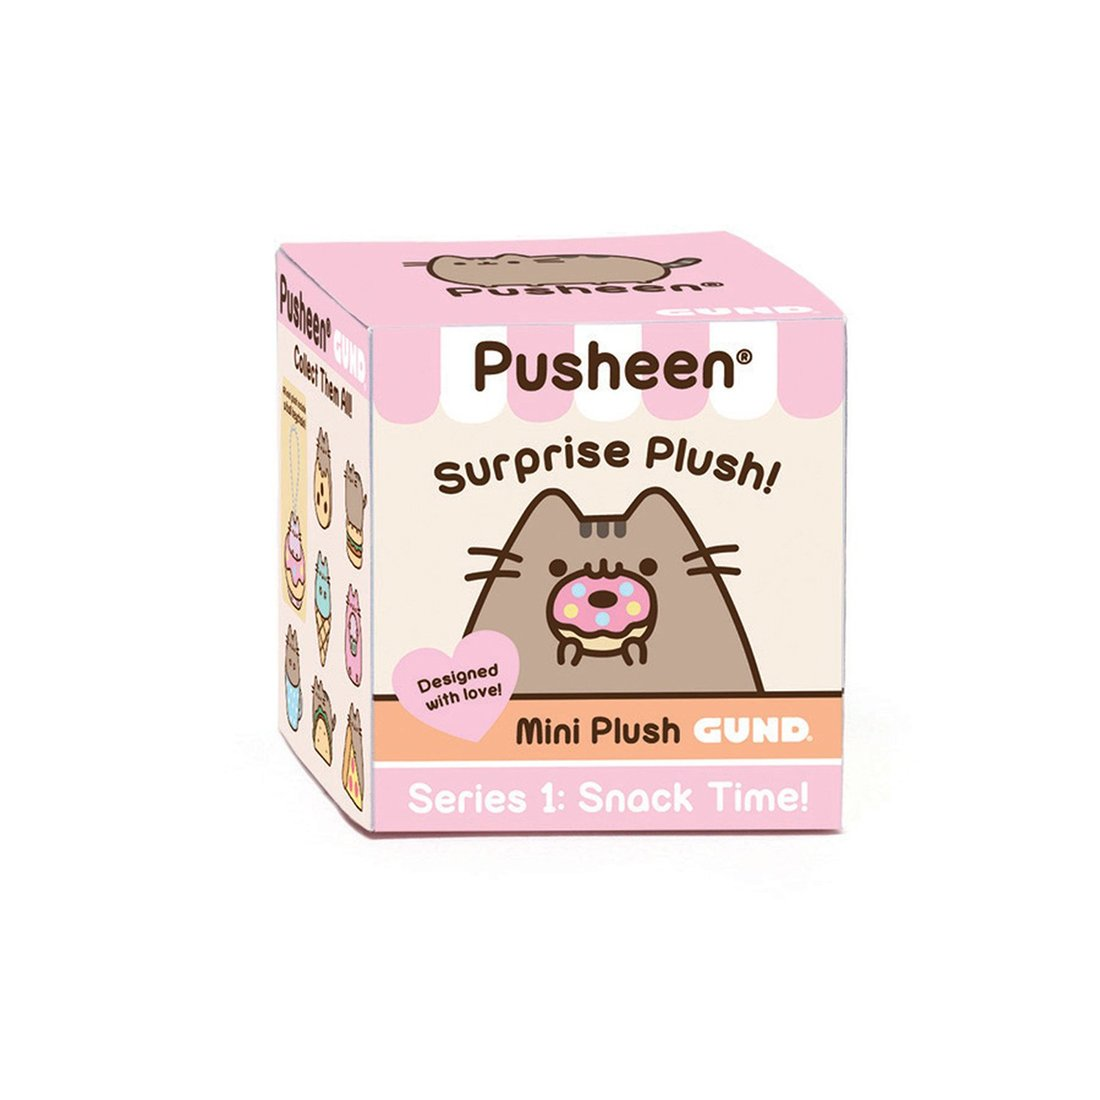 Gund Pusheen Surpise Plush - Series 1: Snack Time